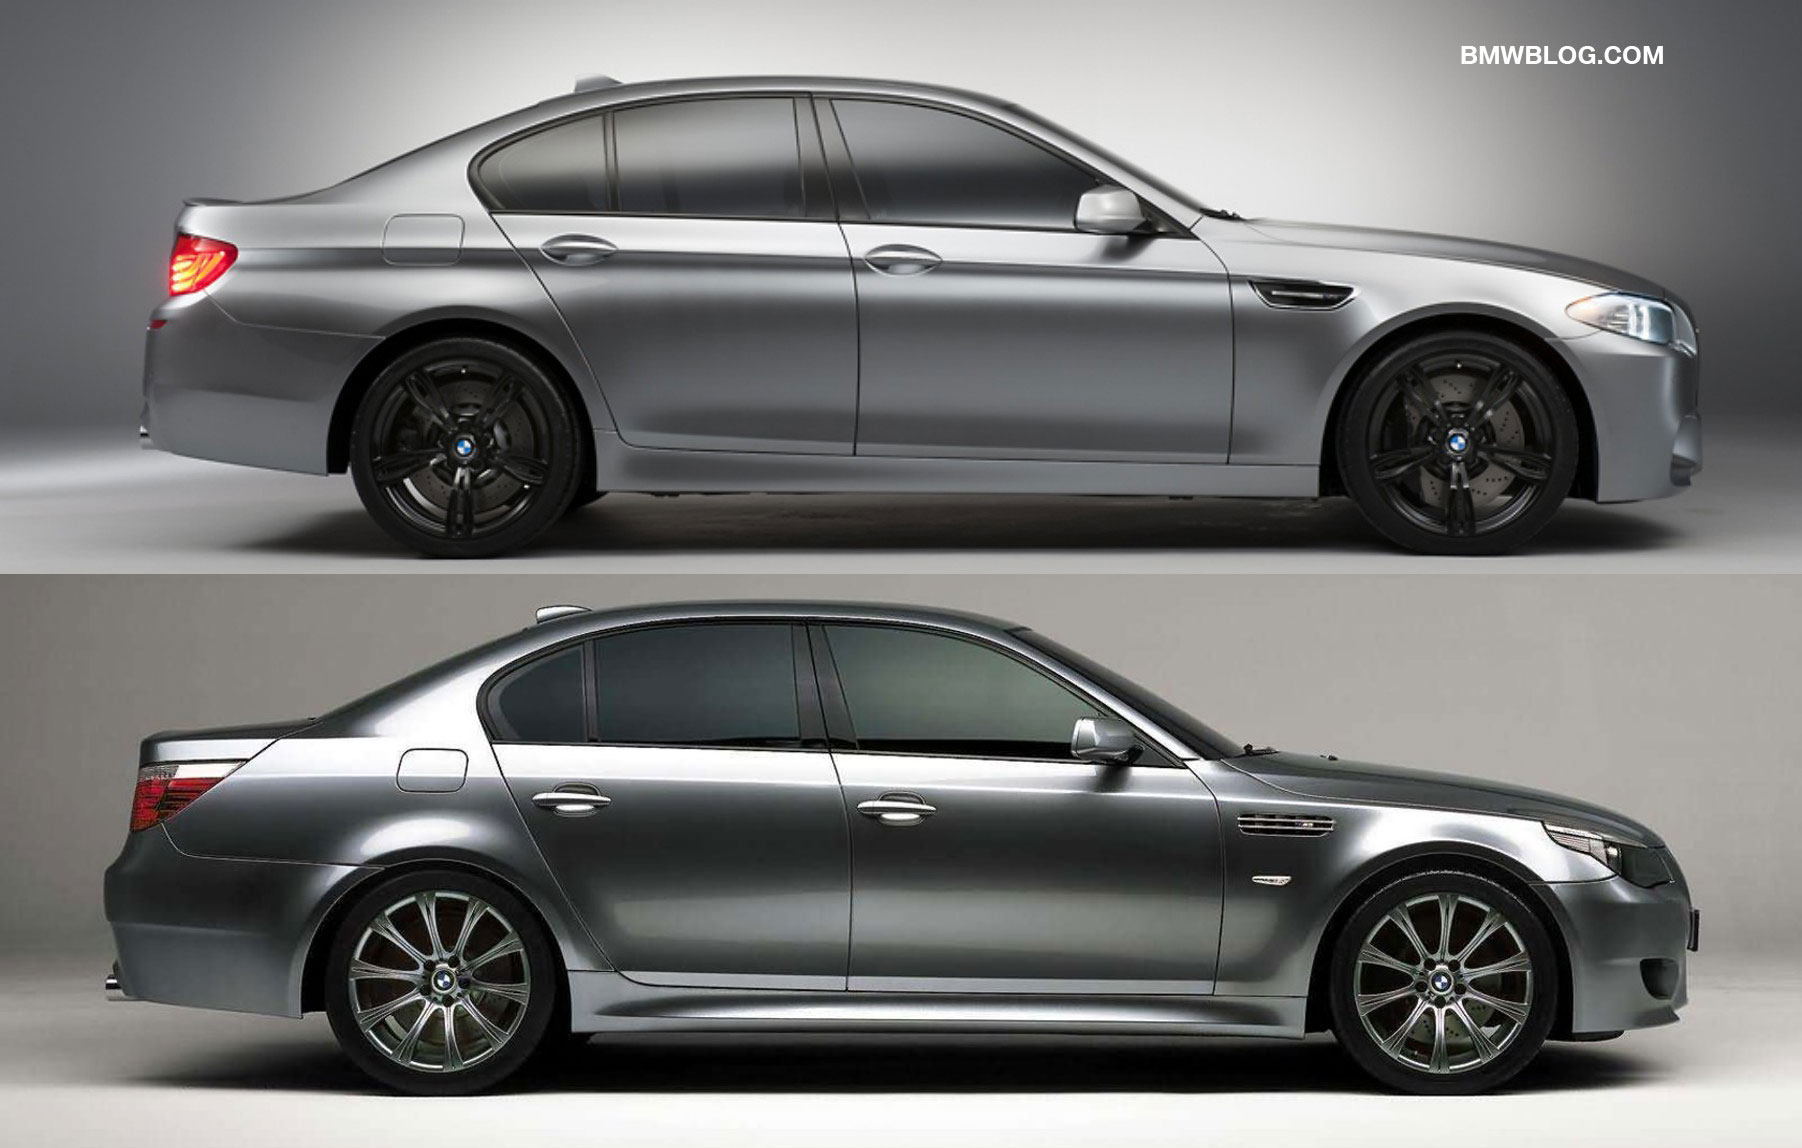 photo comparison bmw e60 m5 concept vs f10 m5 concept. Black Bedroom Furniture Sets. Home Design Ideas